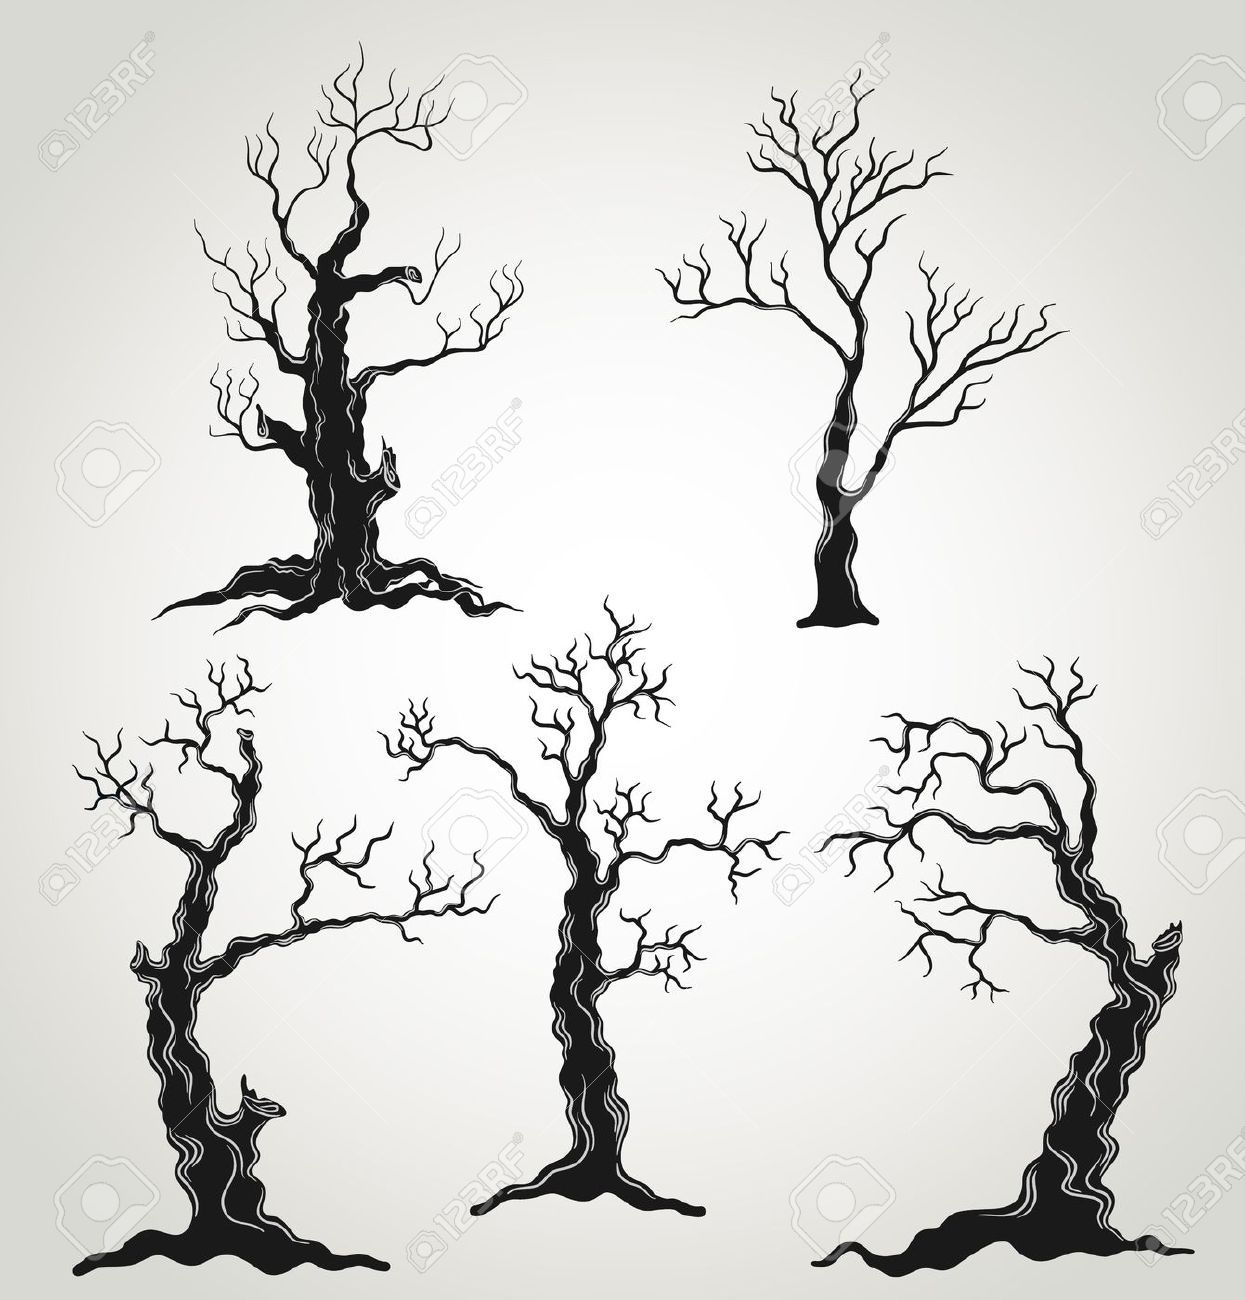 hight resolution of spooky tree stock vector illustration and royalty free spooky tree